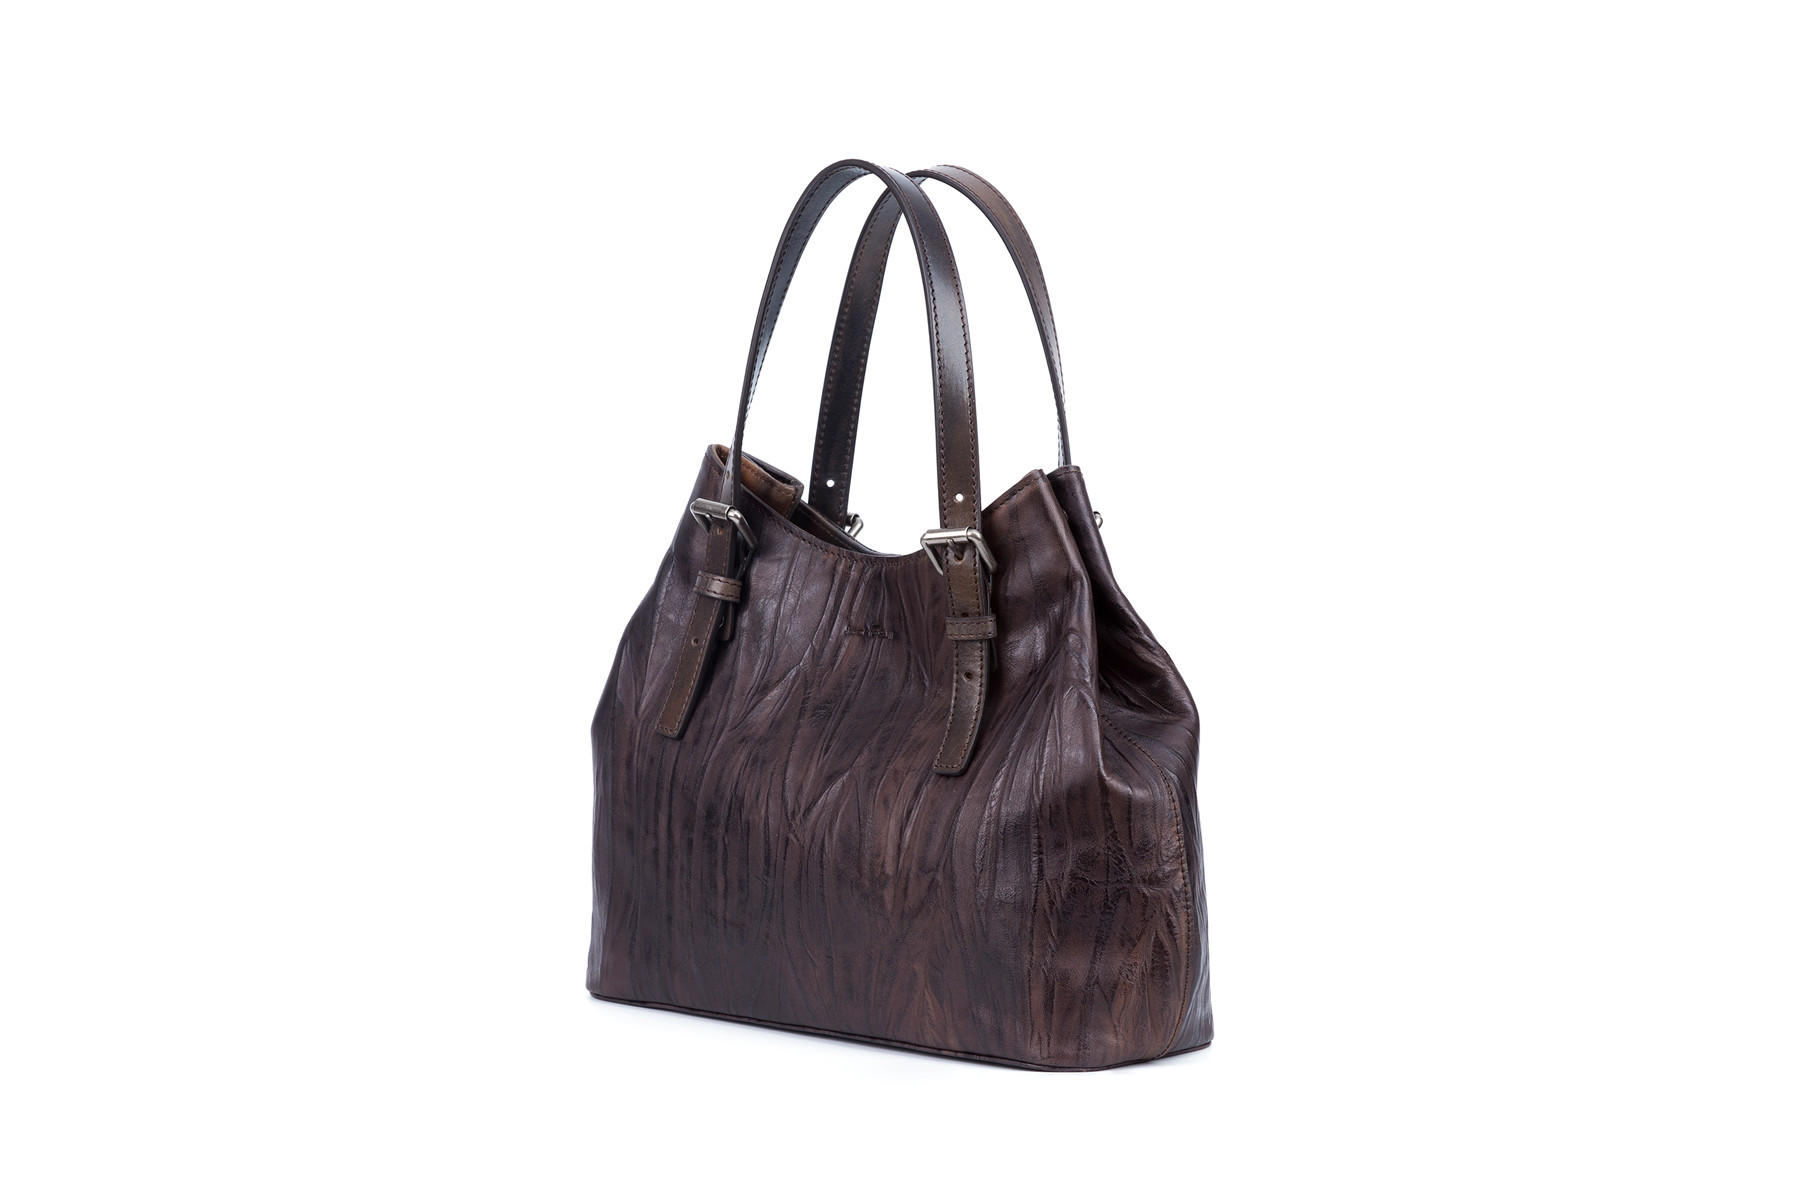 Handbag vegetable tanned leather magnet closure